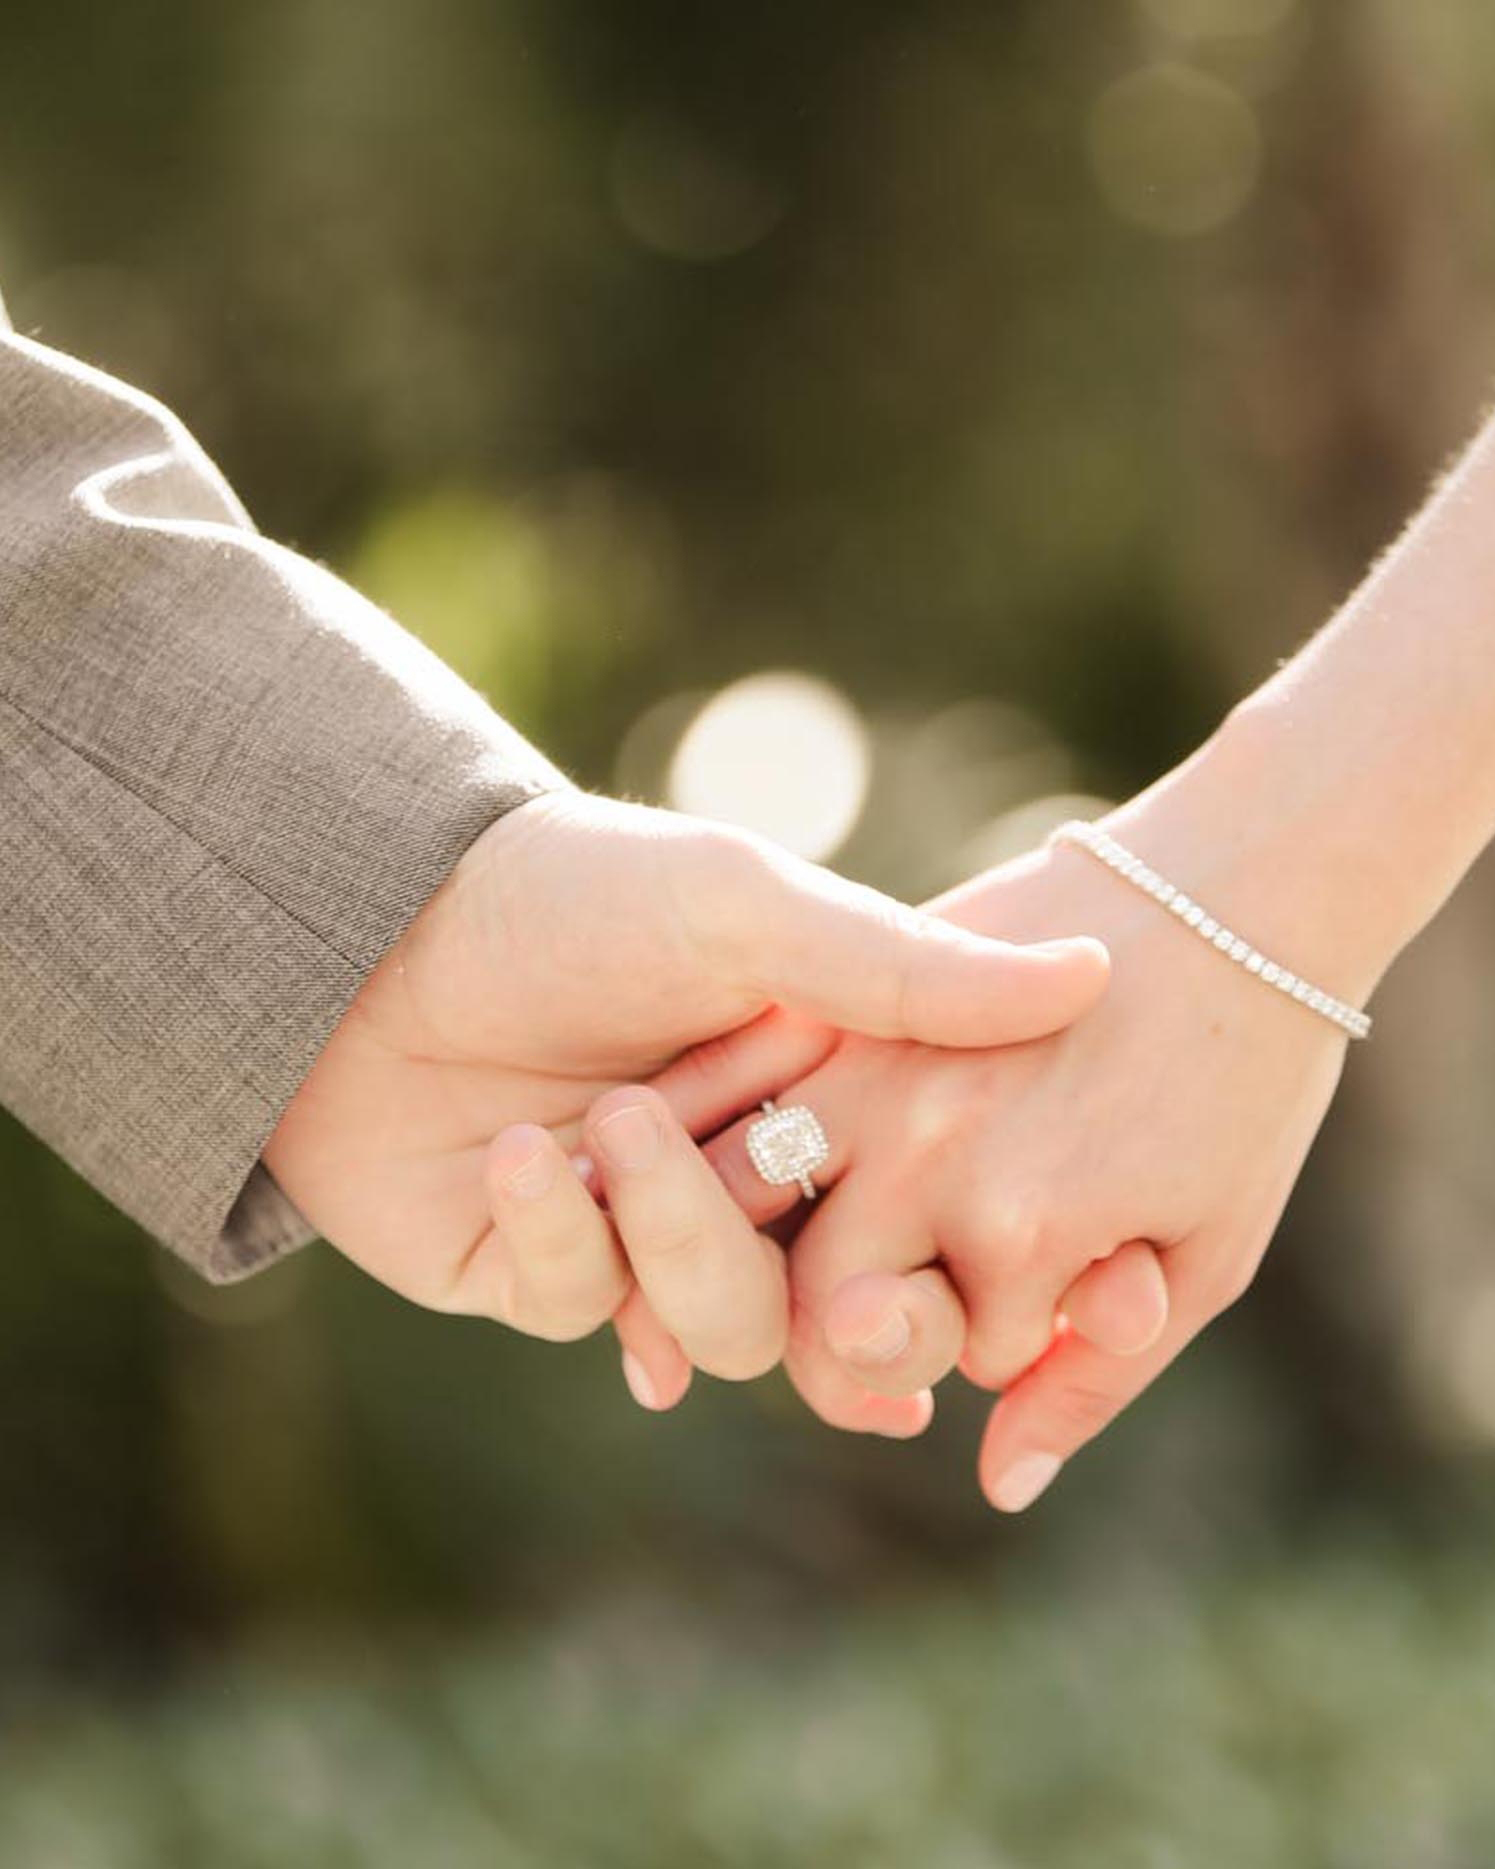 1-engaged-holding-hands-0116.jpg